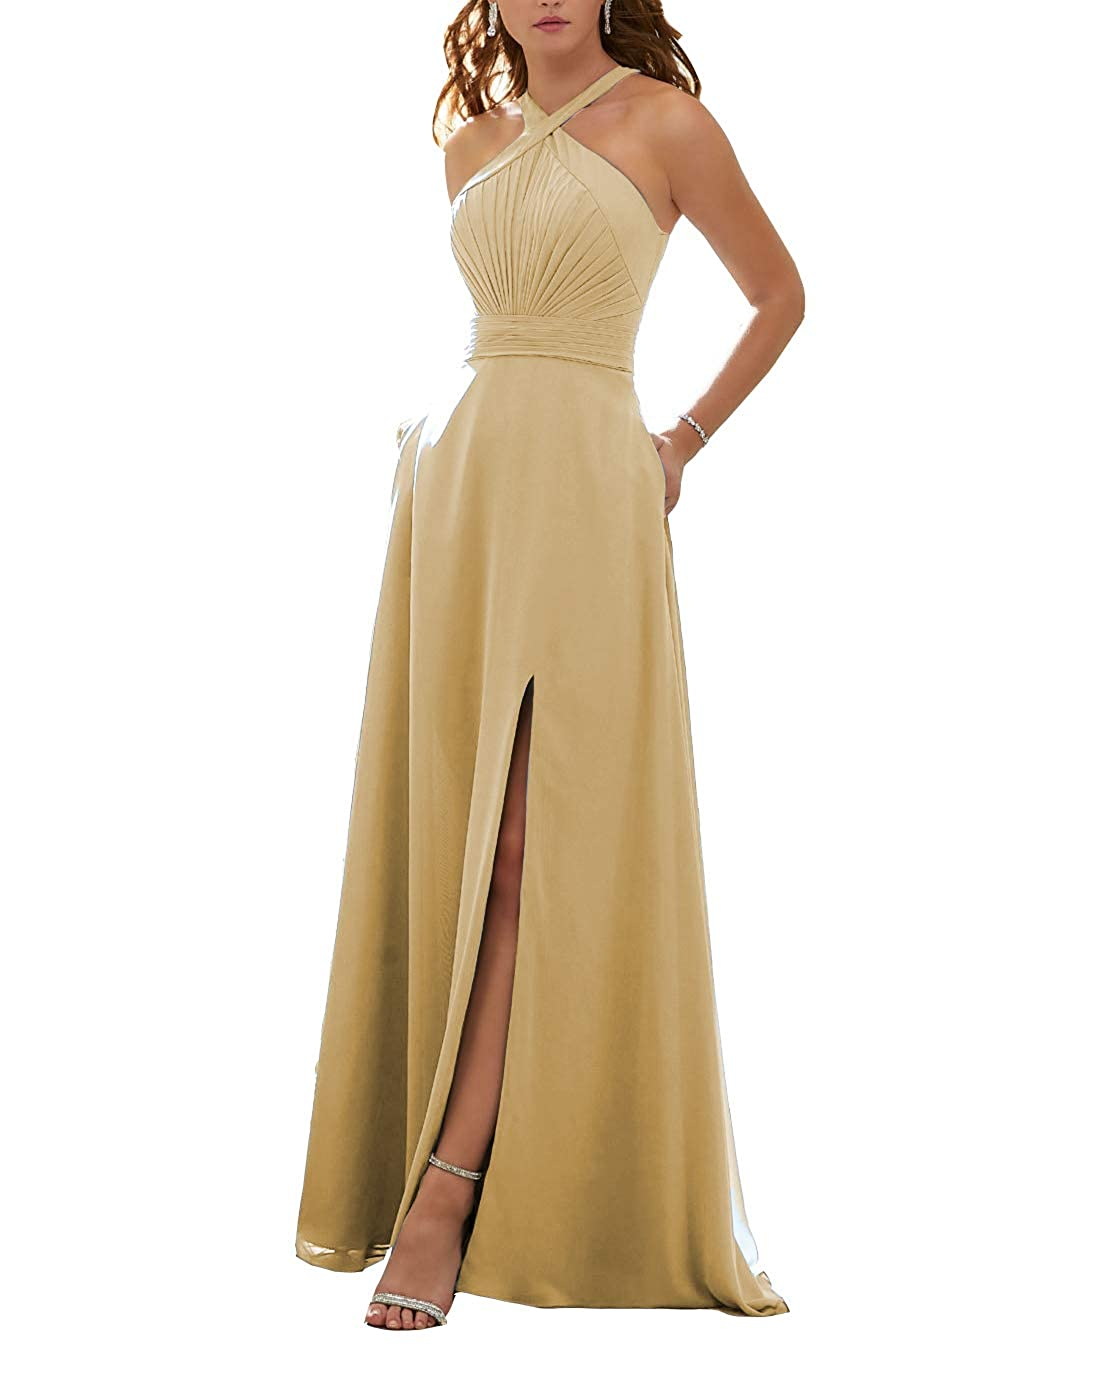 Glod Stylefun Women's Halter Bridesmaid Dresses Slit 2019 Formal Prom Evening Party Gowns with Side Pockets KN010